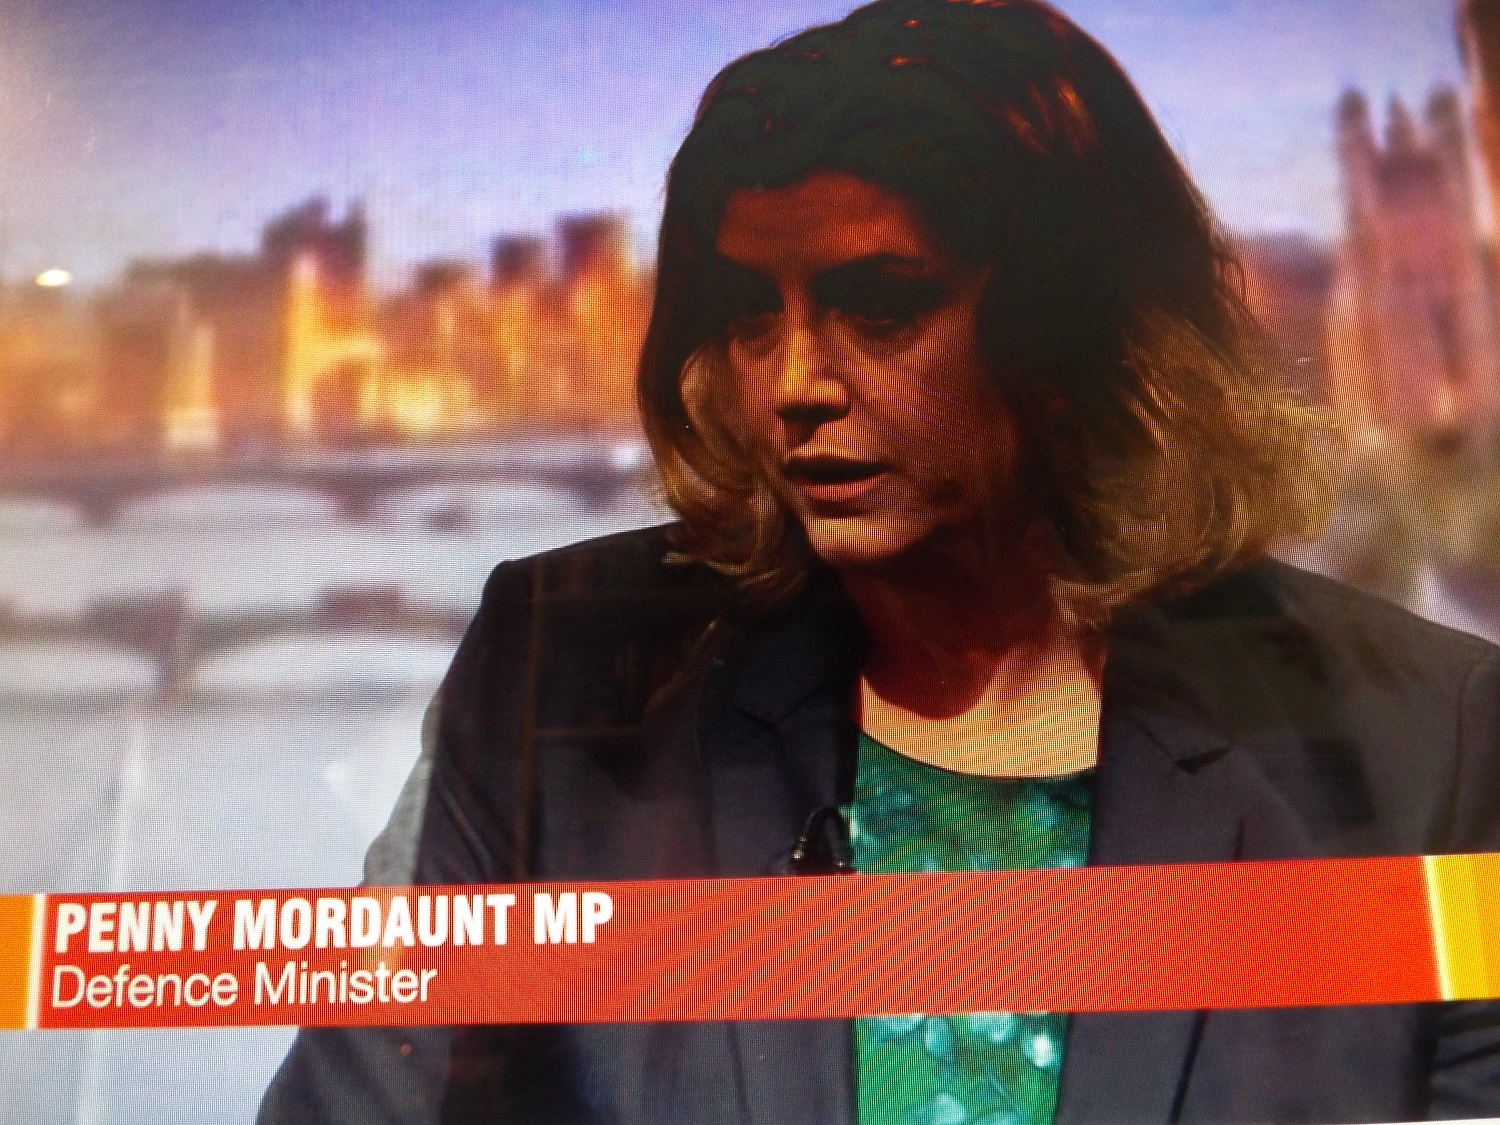 Penny Mordaunt, Defence Secretary - Has Theresa May Replaced One Gaffe-Prone 'Liar' With Another? -